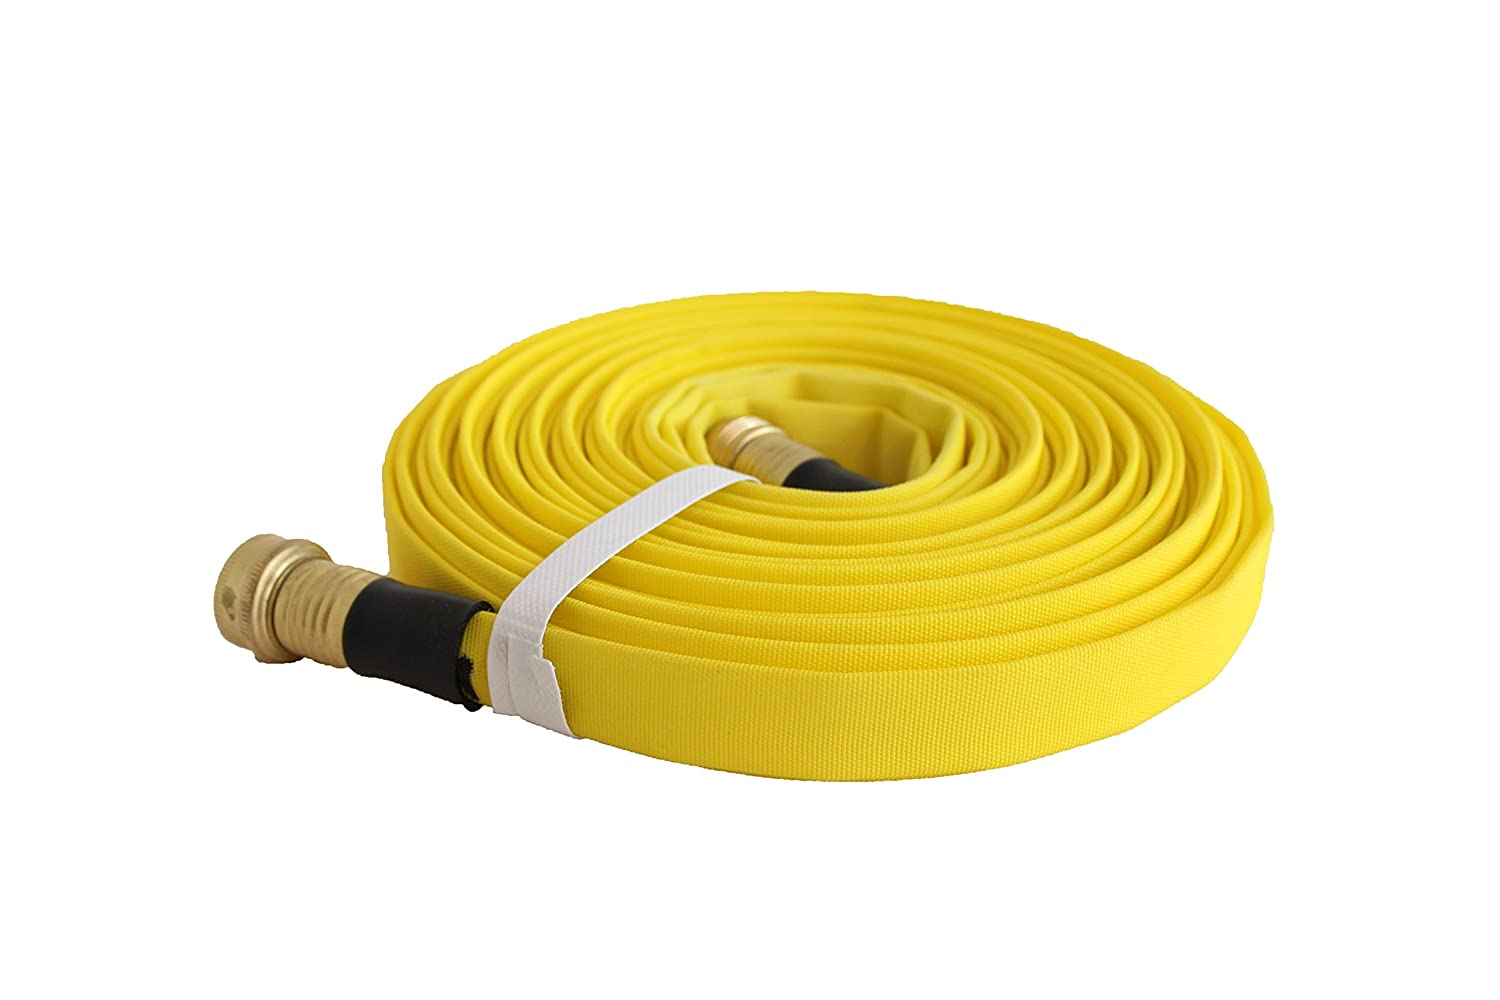 Amazoncom WASP Forestry Grade Lay Flat Hose with Garden Thread